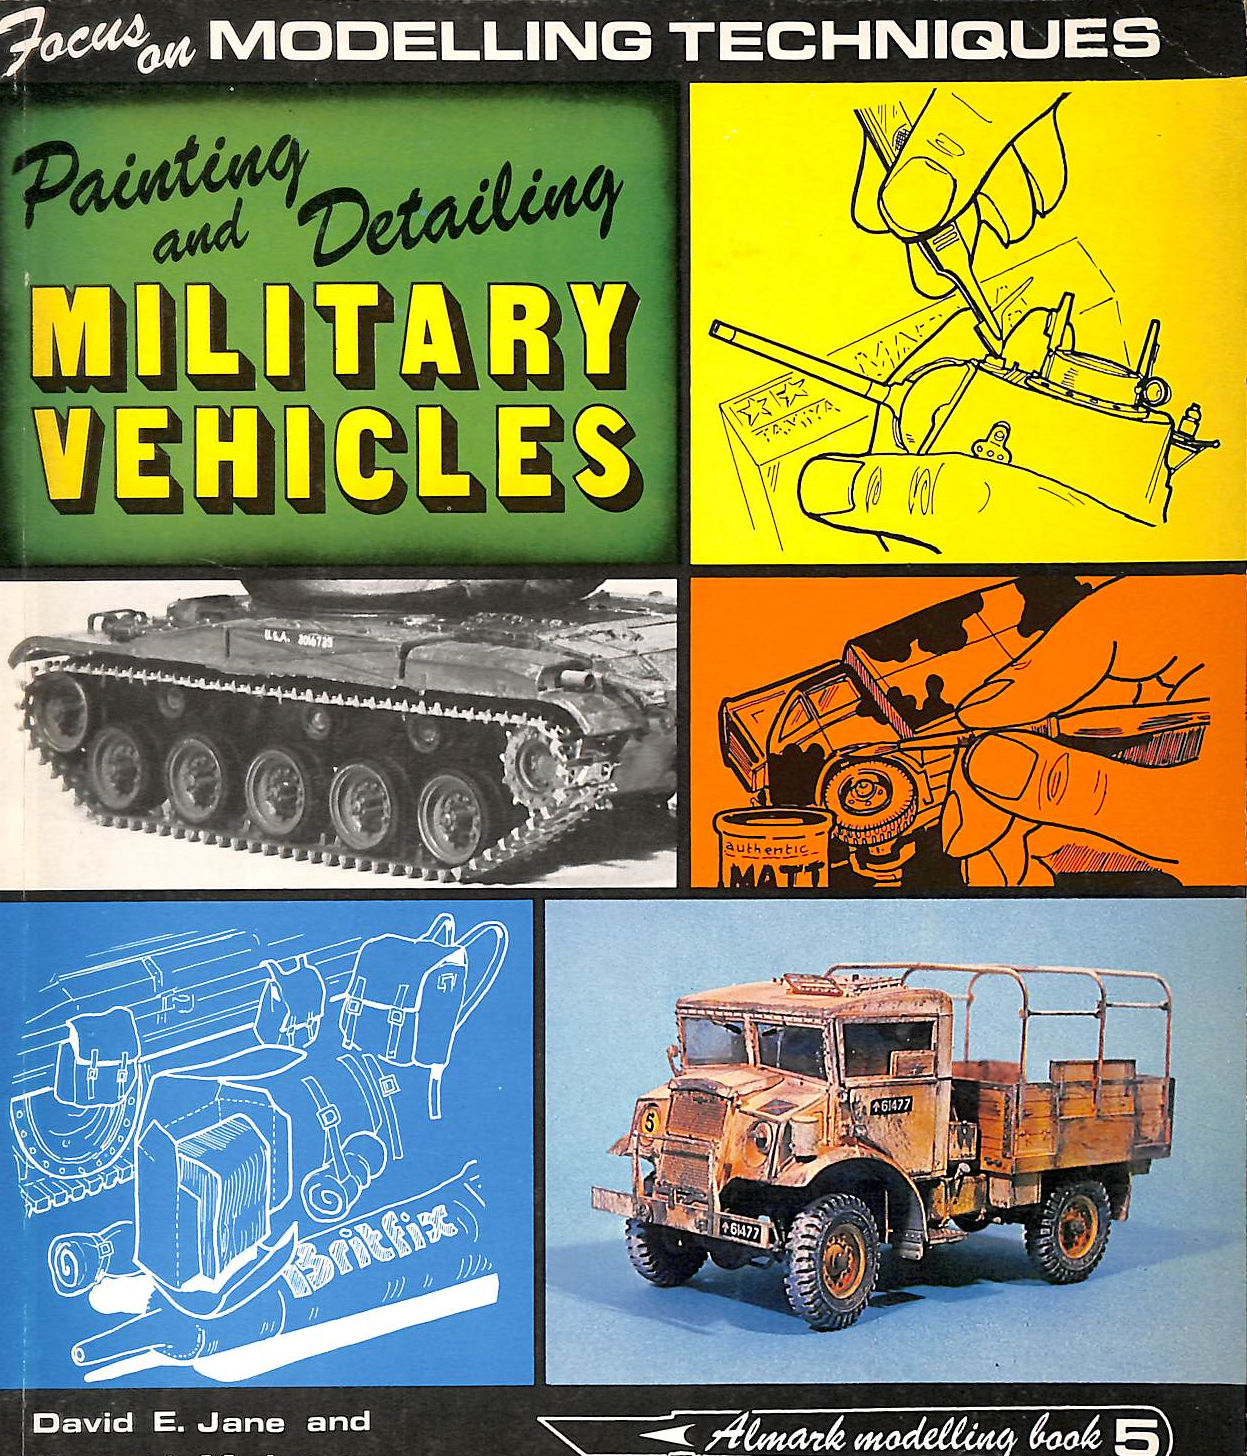 Image for Painting & Detailing Military Vehicles - Focus On Modelling Techniques